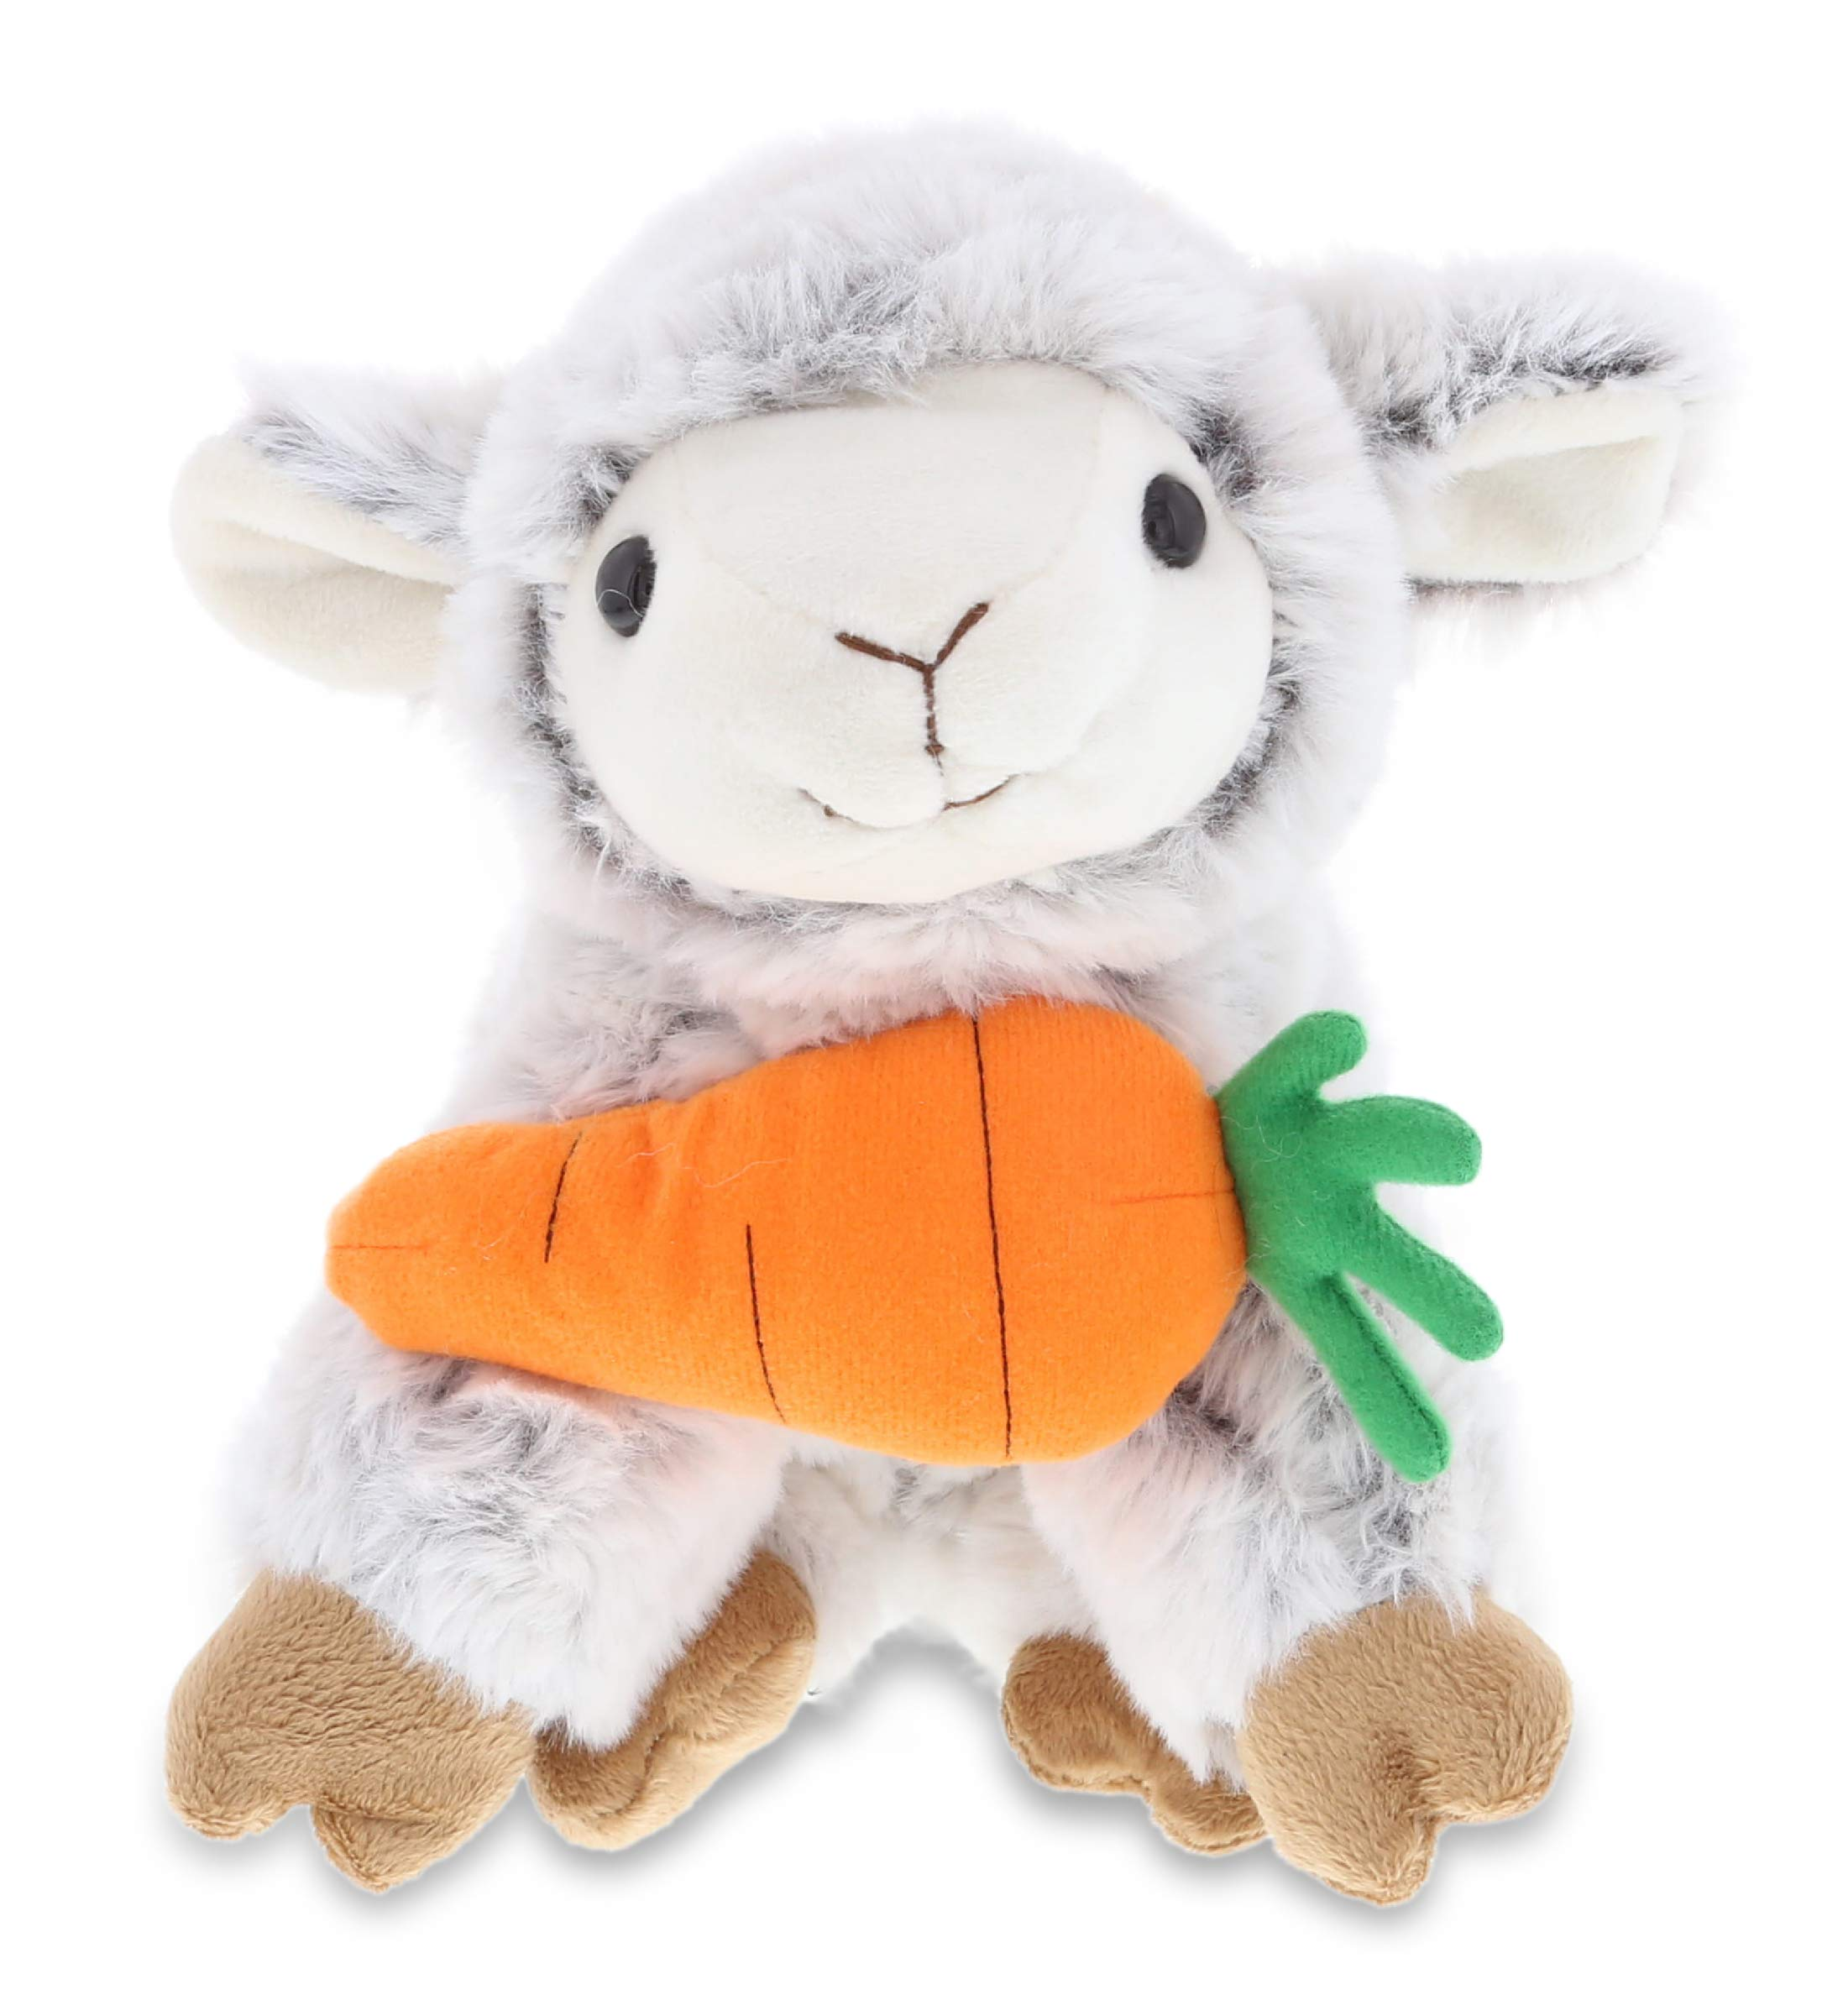 "DolliBu Happy Easter Super Soft Plush Squat Sheep with Carrot - Cute Stuffed Animals with Carrot Plush Toy, Perfect Easter Holiday Surprise Gift, Spring Easter Farm Plush Animal - 9.5"" Inches"